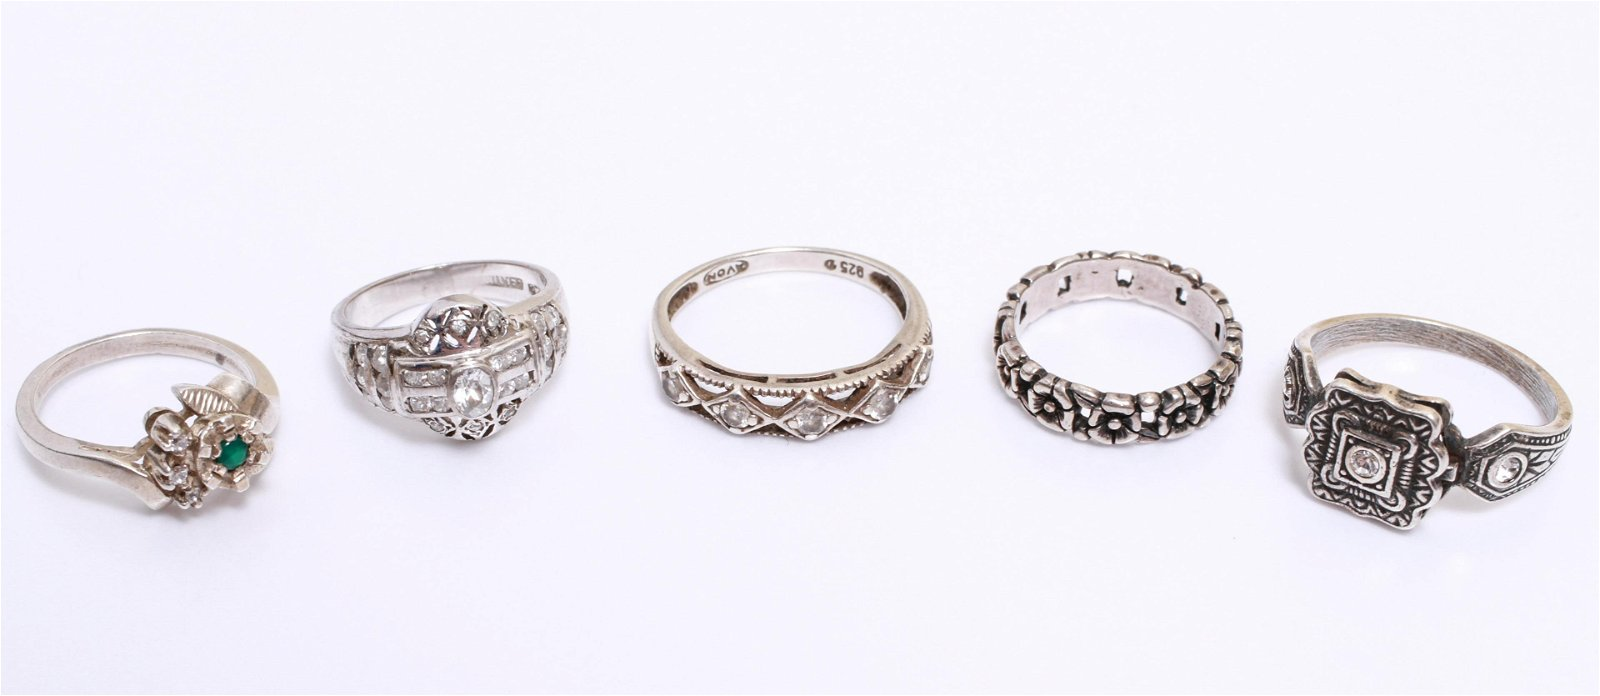 Silver Rings w an Emerald & Cubic Zirconias, 5